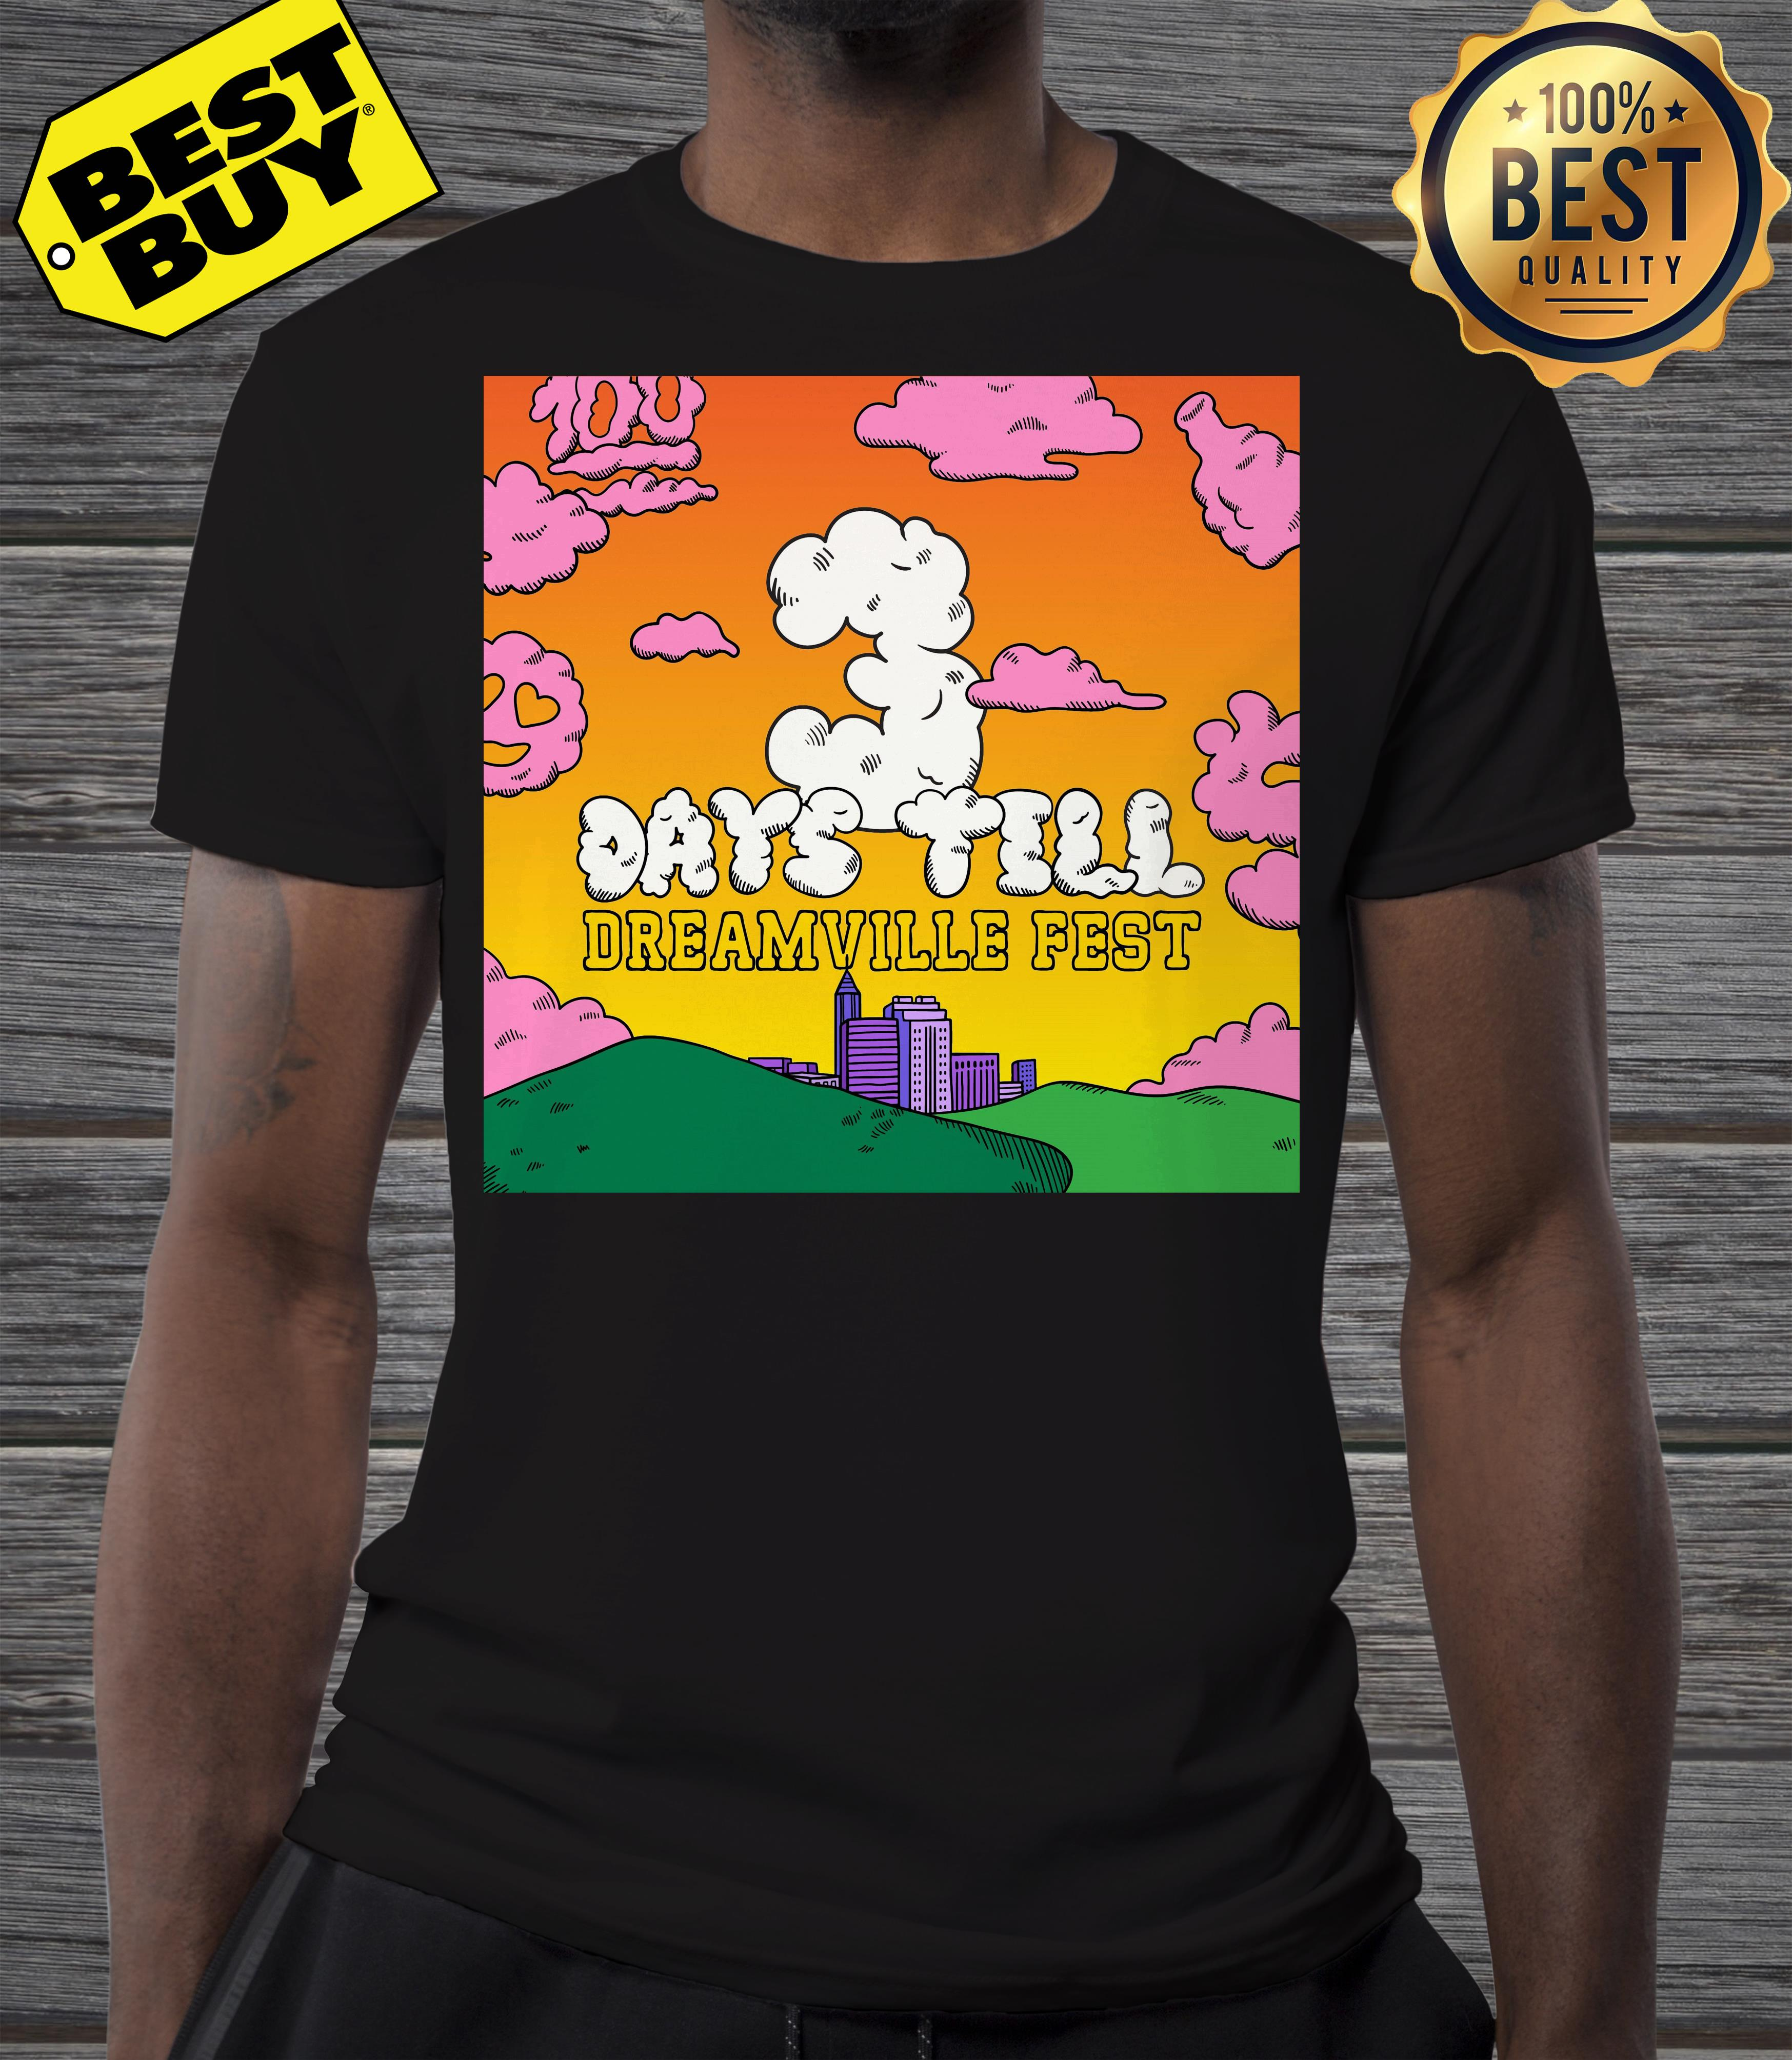 Live Nation acquires J. Cole's day still Dreamville Music Festival shirt